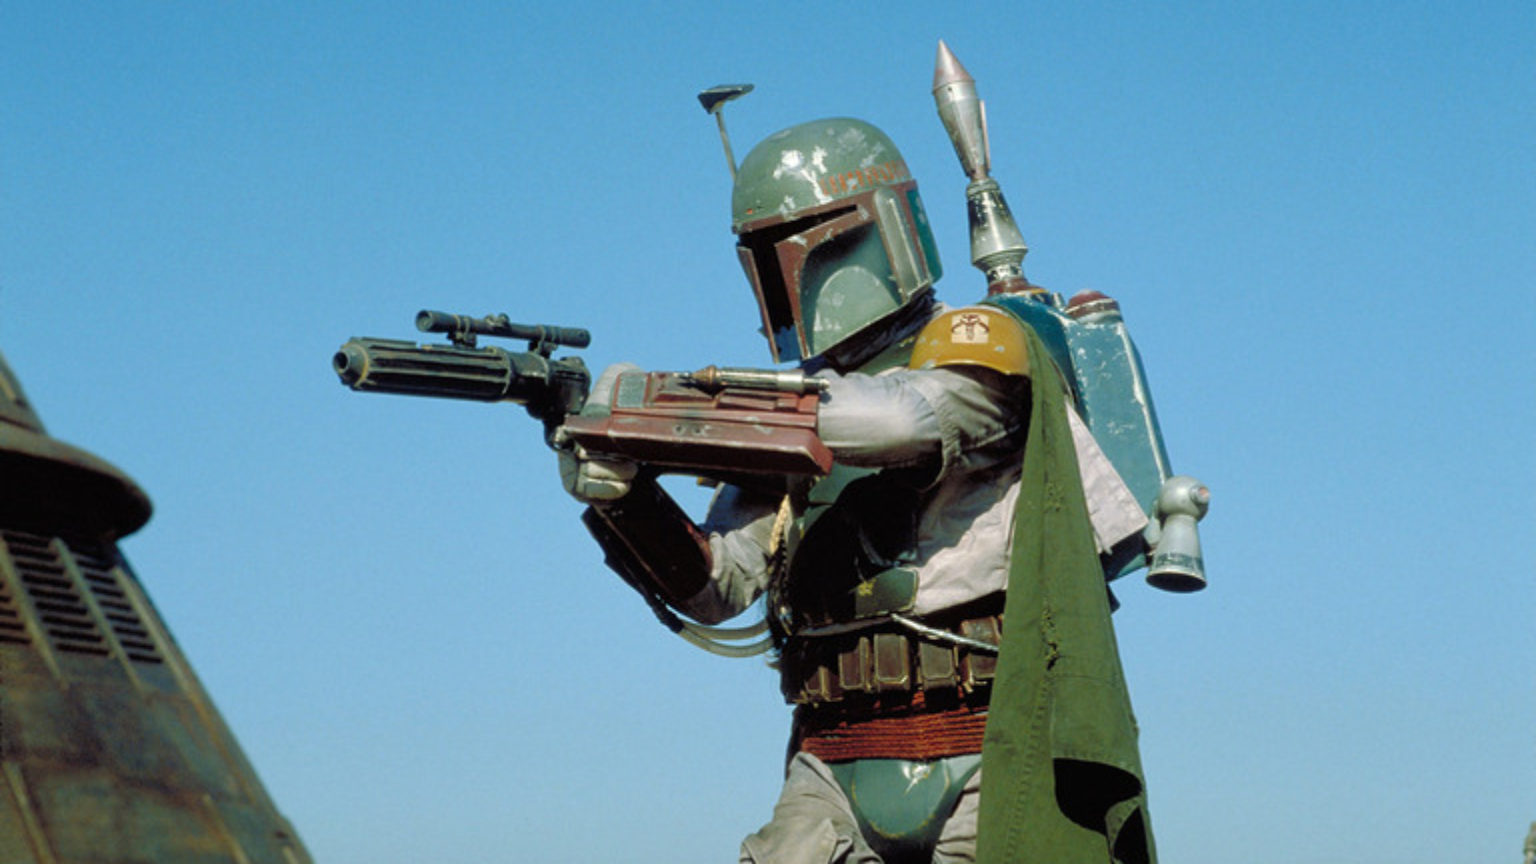 The Empire Strikes Back - Boba Fett